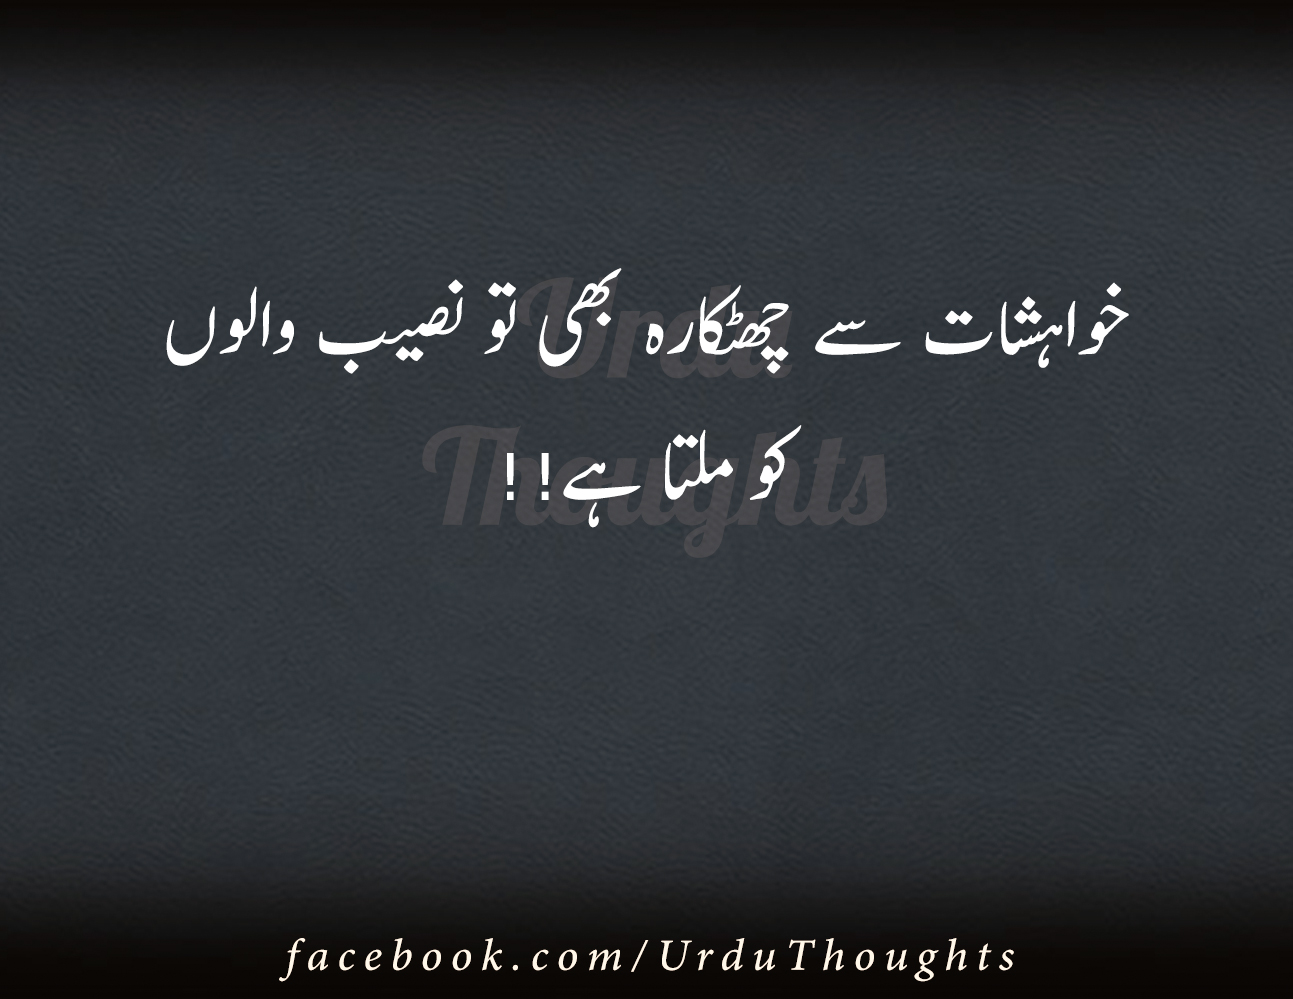 Amazing Quotes Famous Fb Urdu Quotes  Amazing Quotes In Urdu Images  Urdu Thoughts